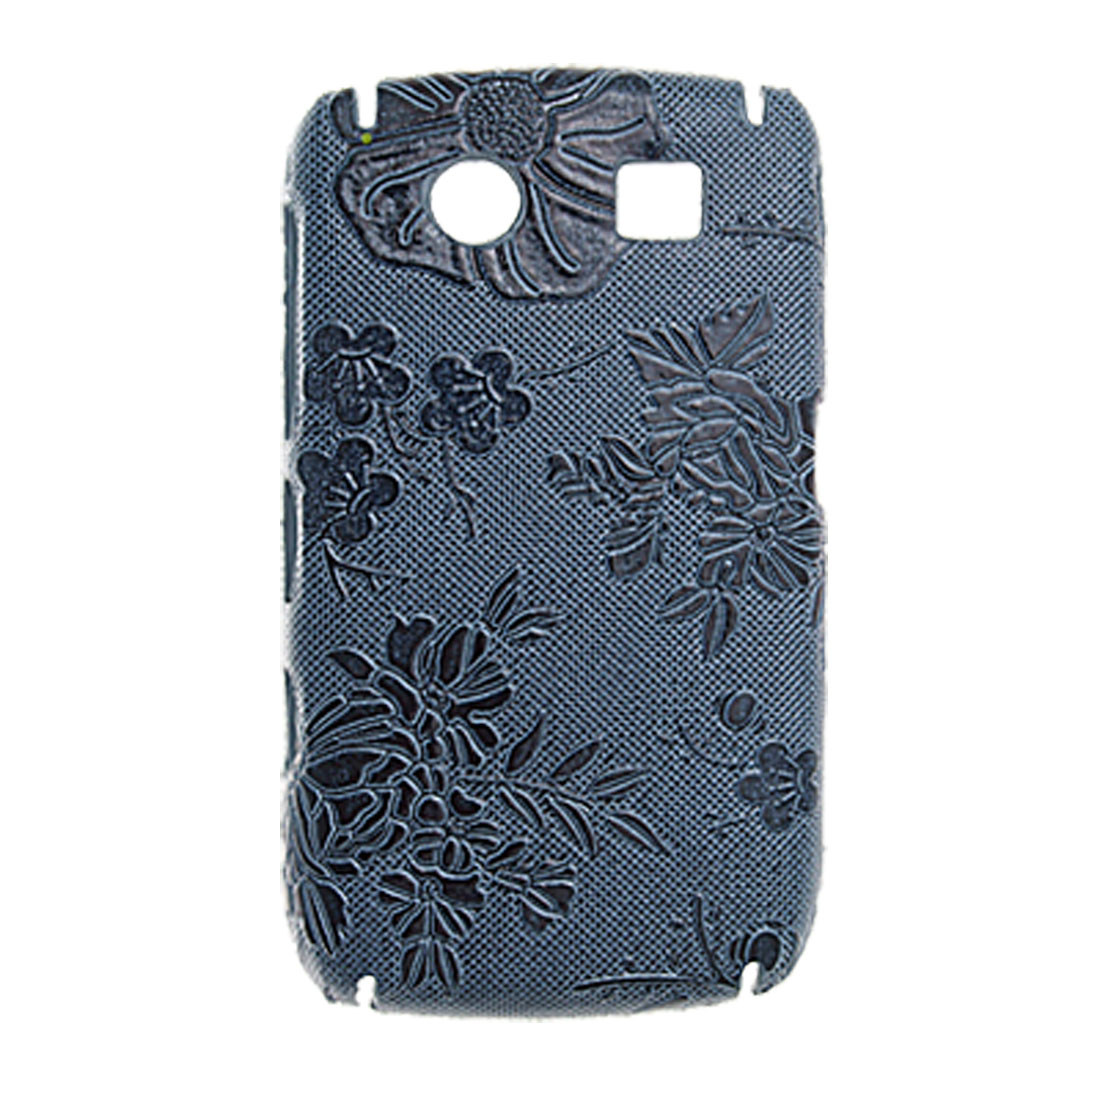 Floral Back Case Plastic Antislip Cover for Blackberry 8900